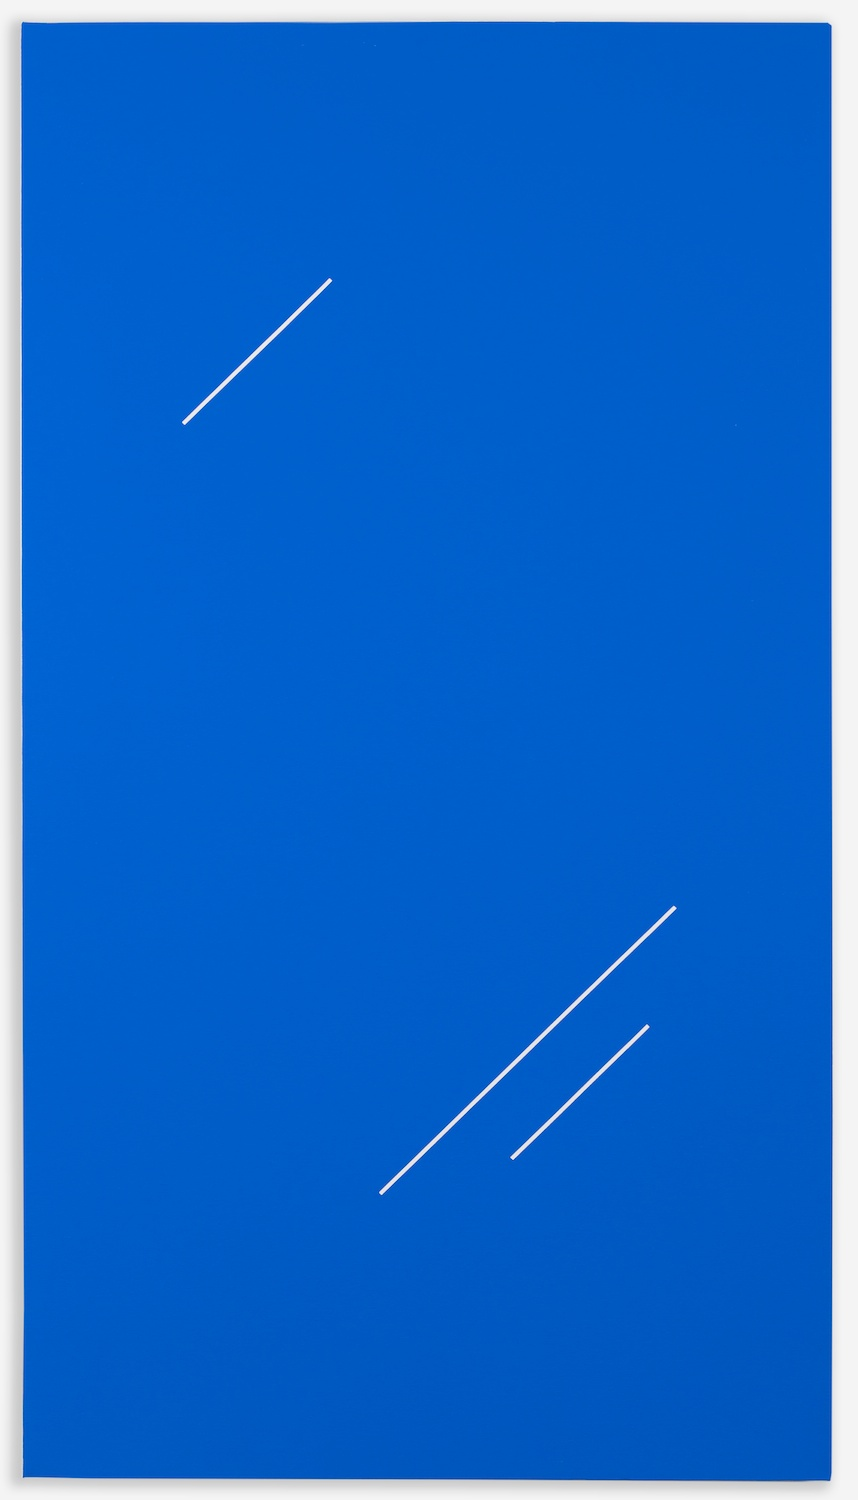 "Paul Cowan BCEAUSE THE SKY IS BULE  2013 Chroma-key blue paint on canvas  48"" x 26""  PC091"